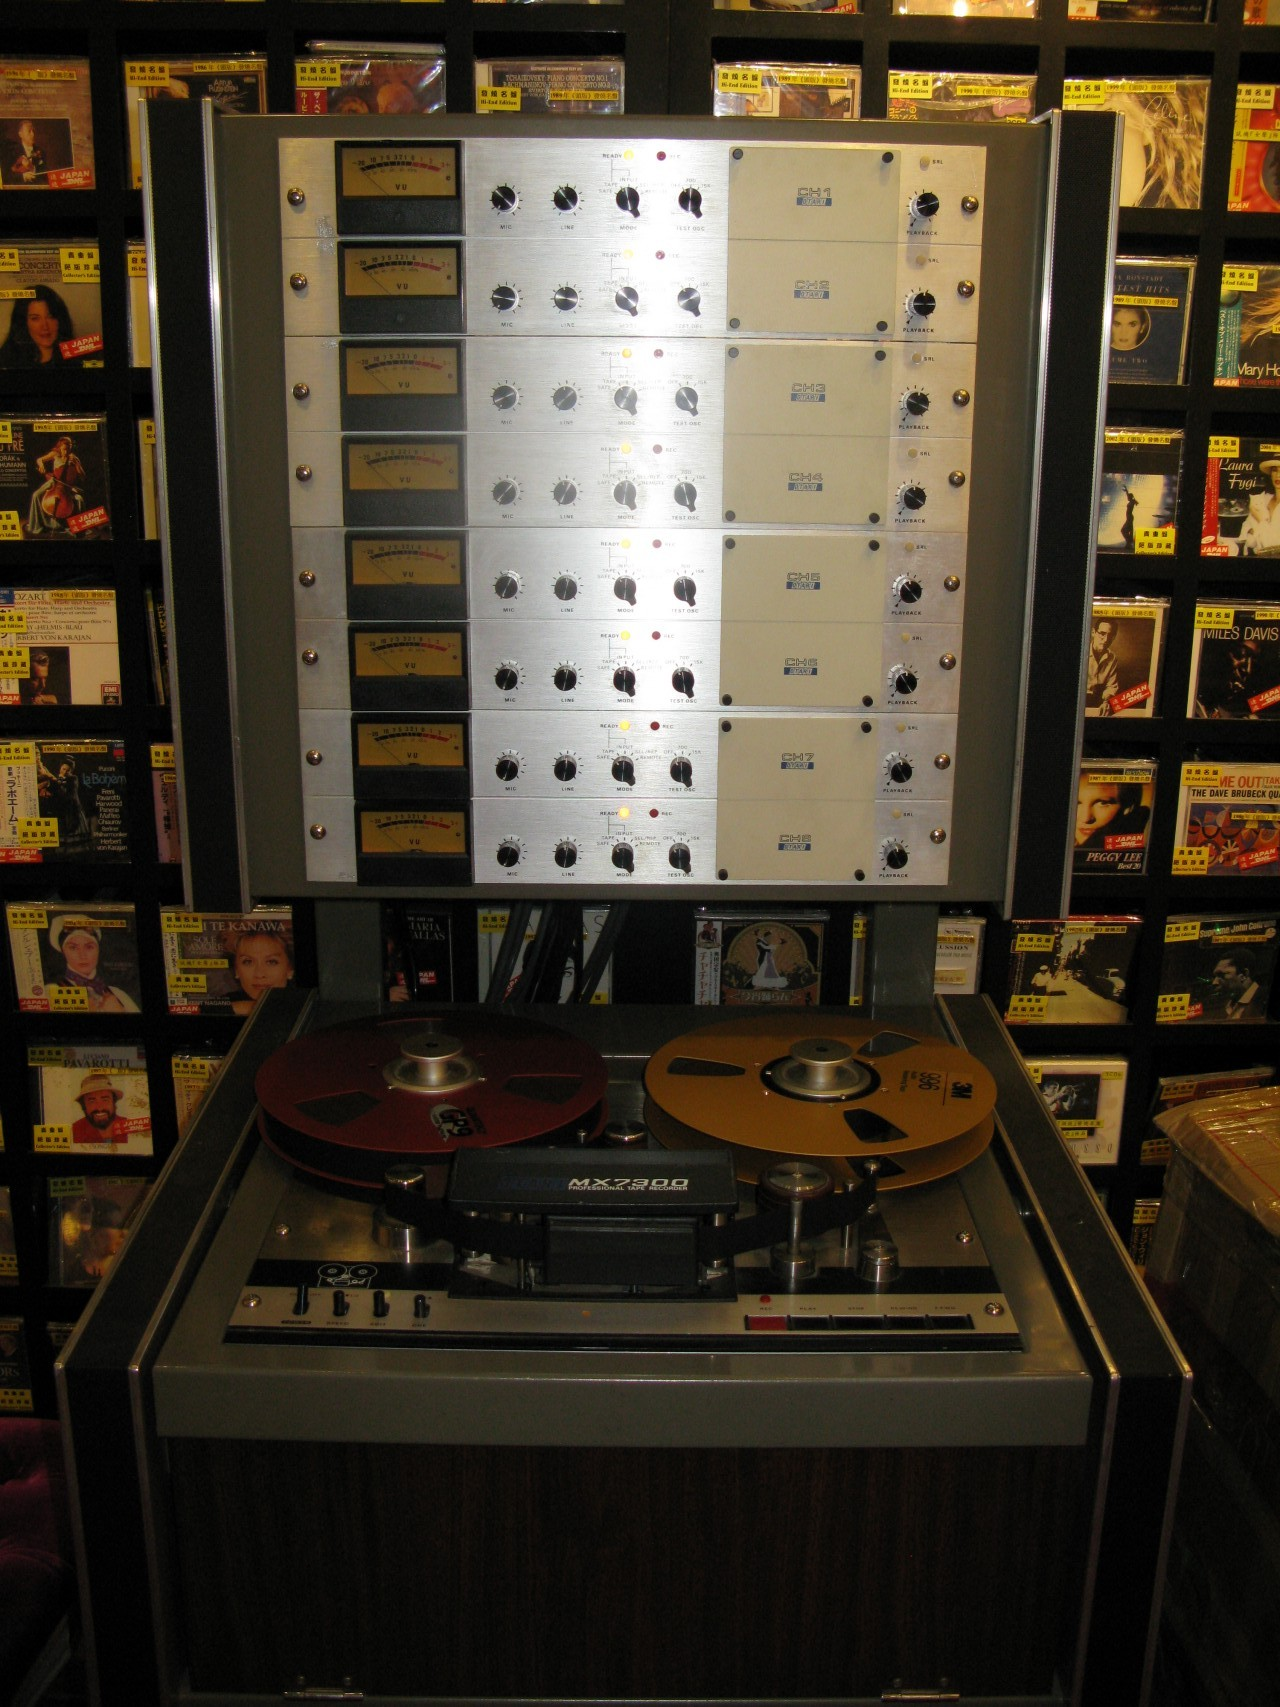 OTARI MX-7308 1'' TAPE 8-CHANNEL